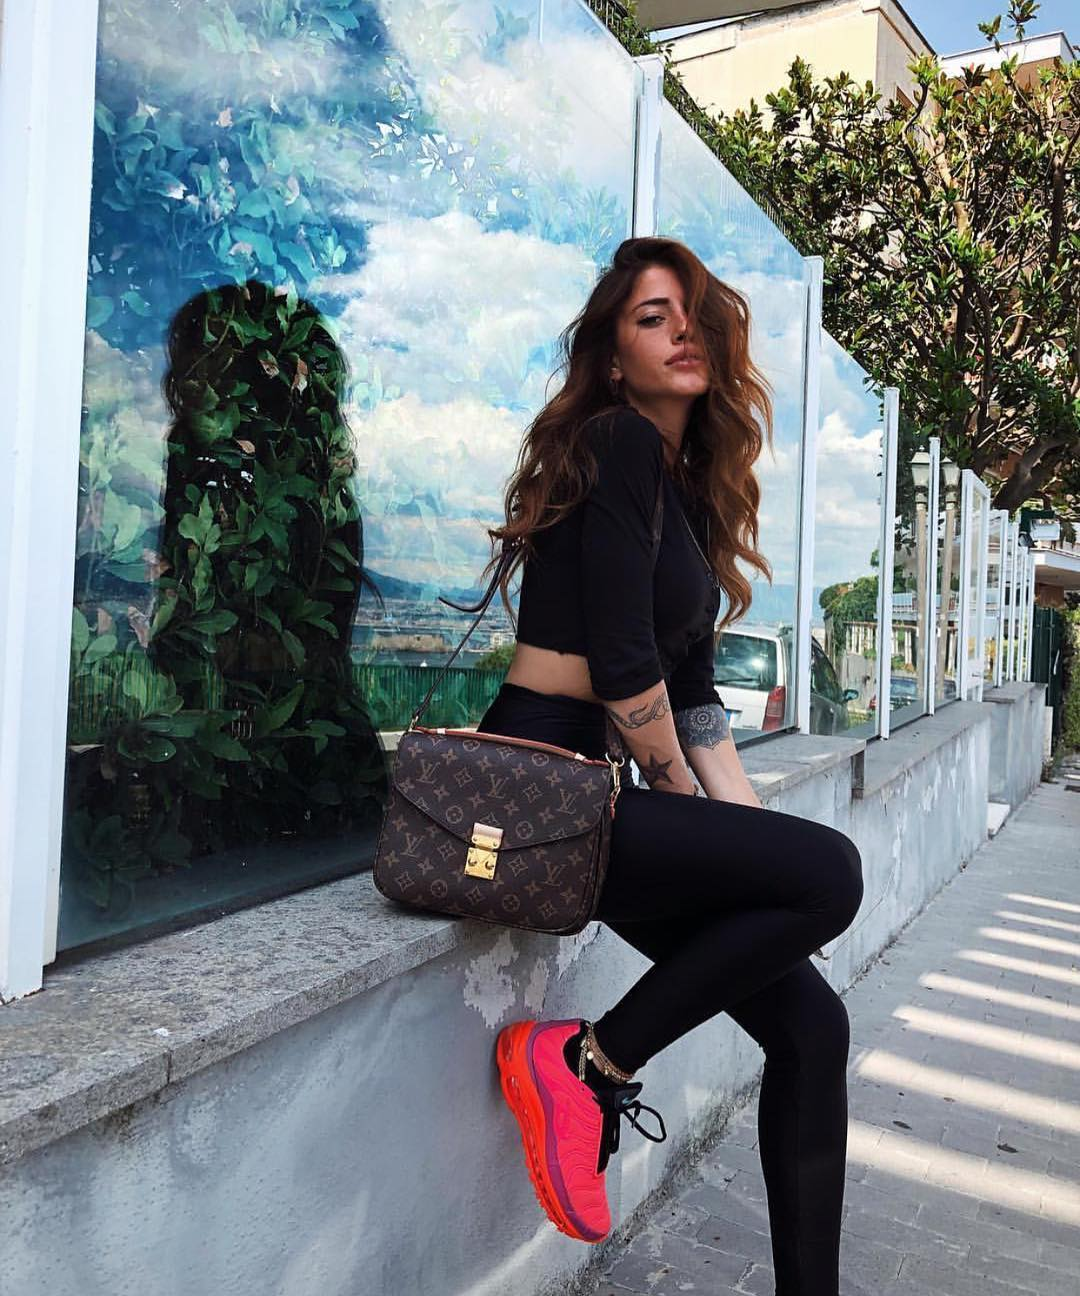 Can I Wear Hot Pink Sneakers With All Black Outfit This Summer 2019